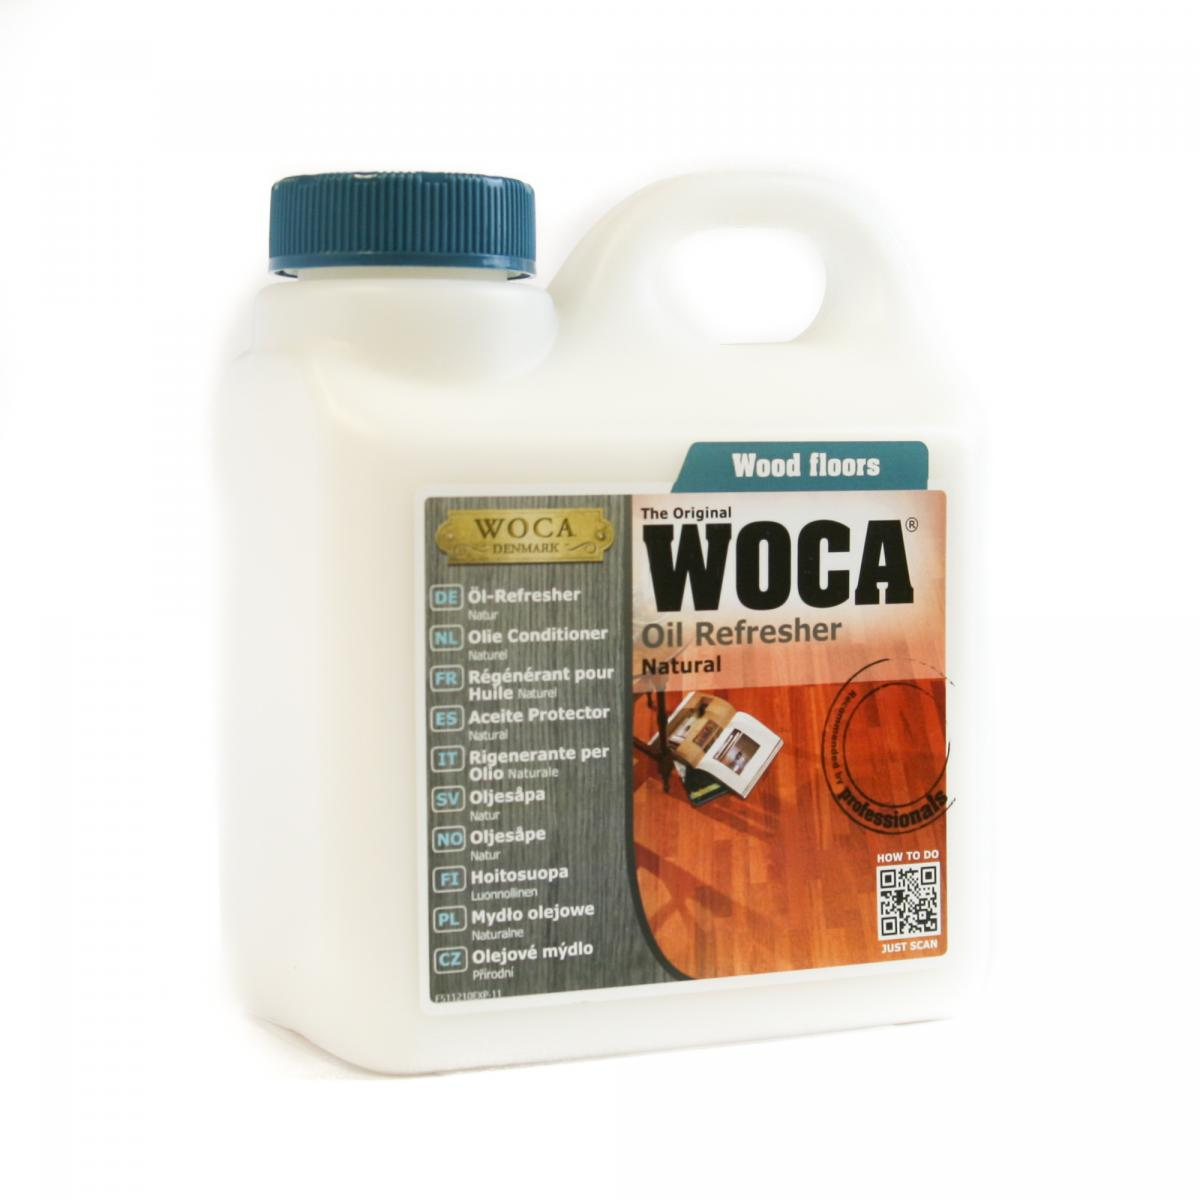 WOCA Oil Refresher: How it Will Enhance Your Wood Floor